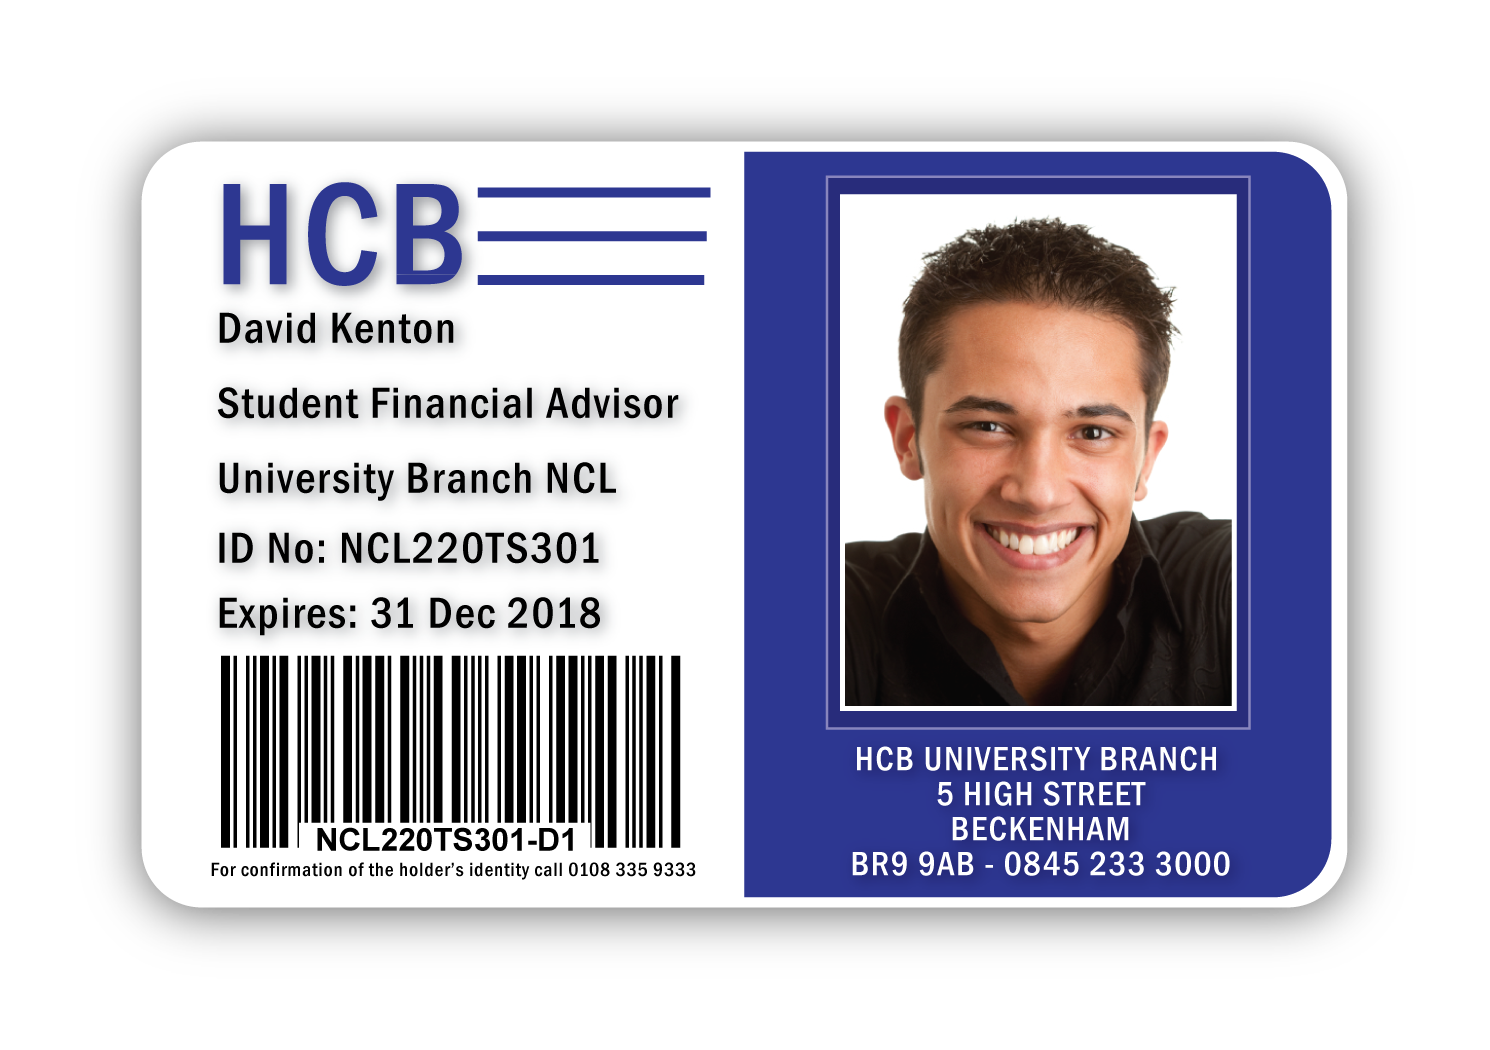 Sample HCB ID Card Design